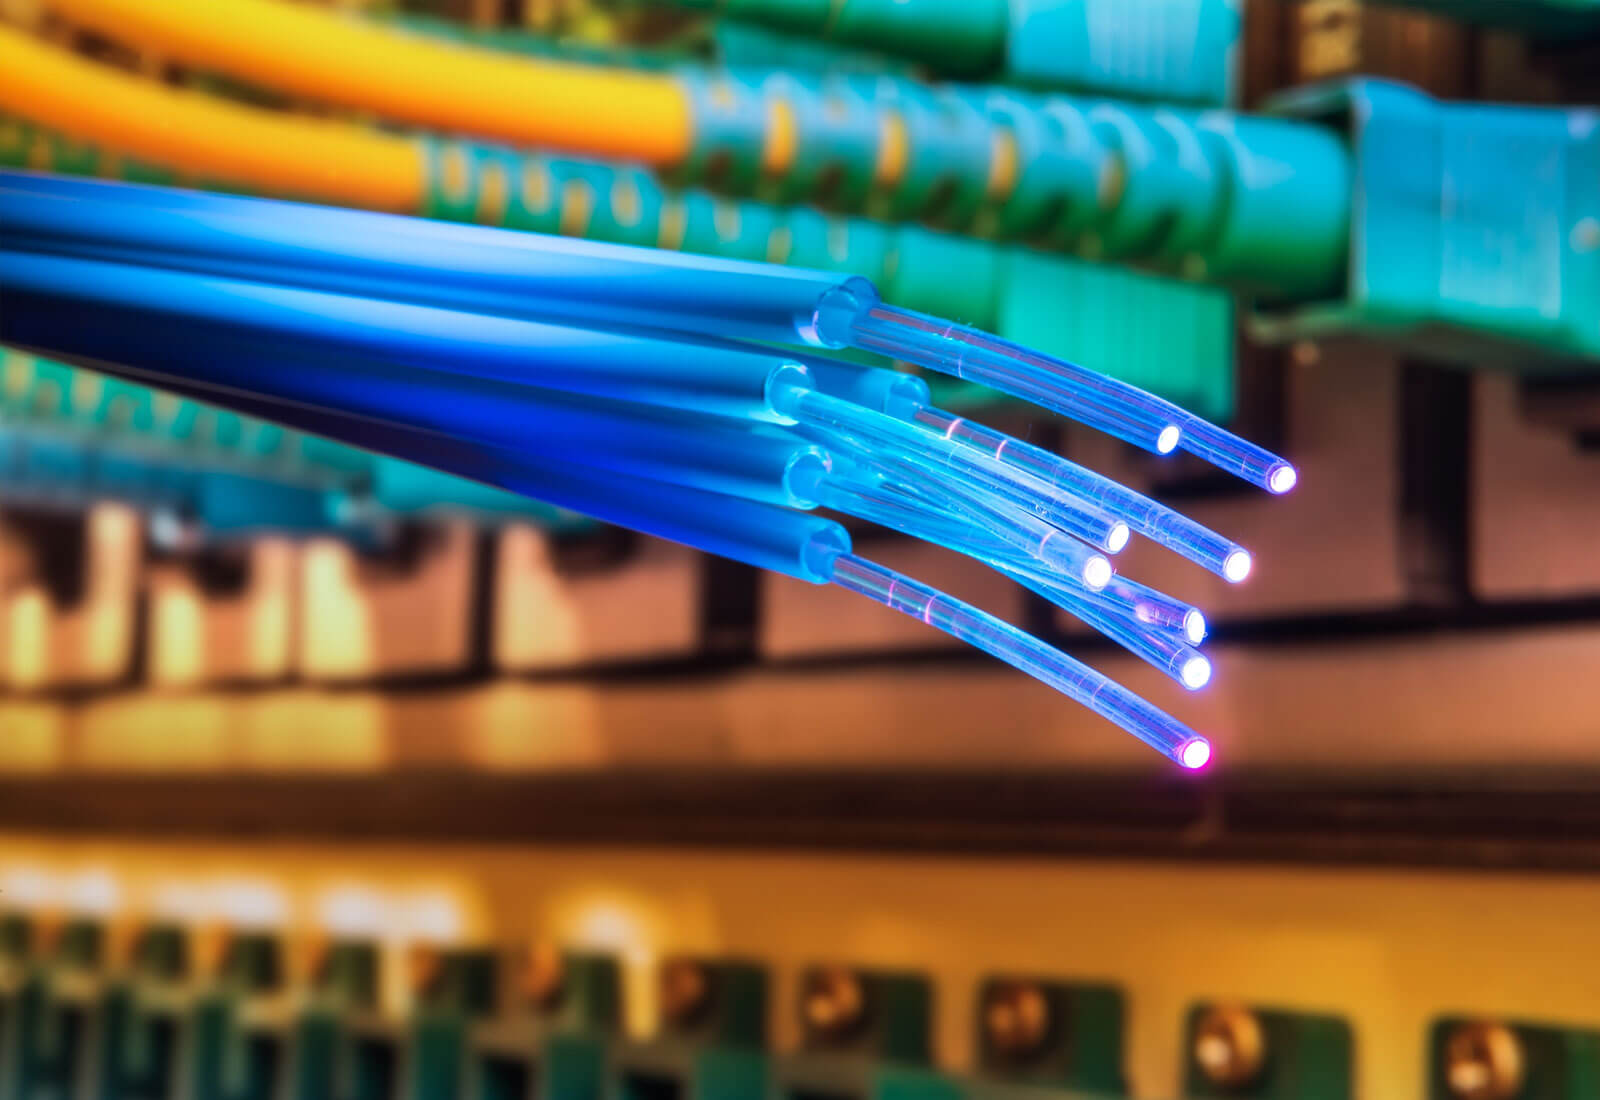 Second Hyalroute Fiber Optic Cable Network Project